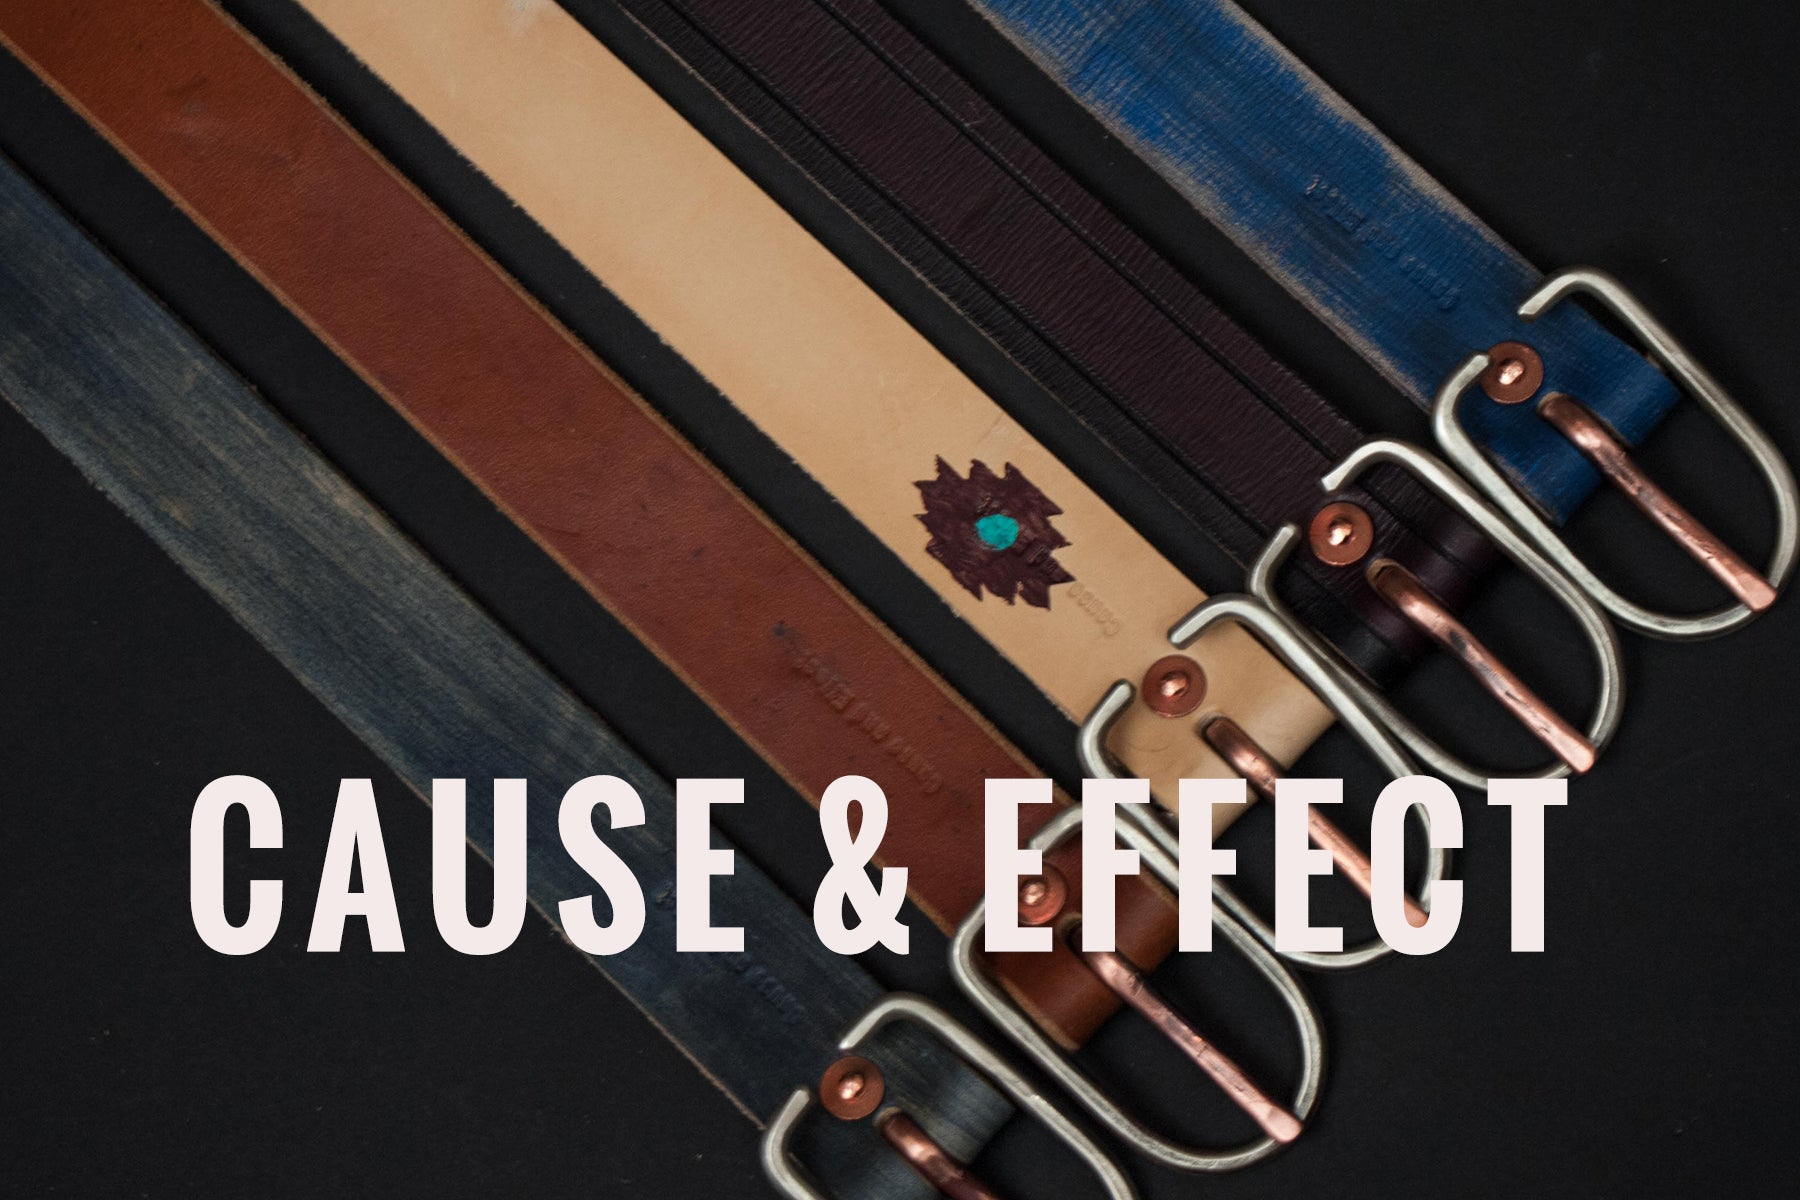 CAUSE & EFFECT AT THE LODGE